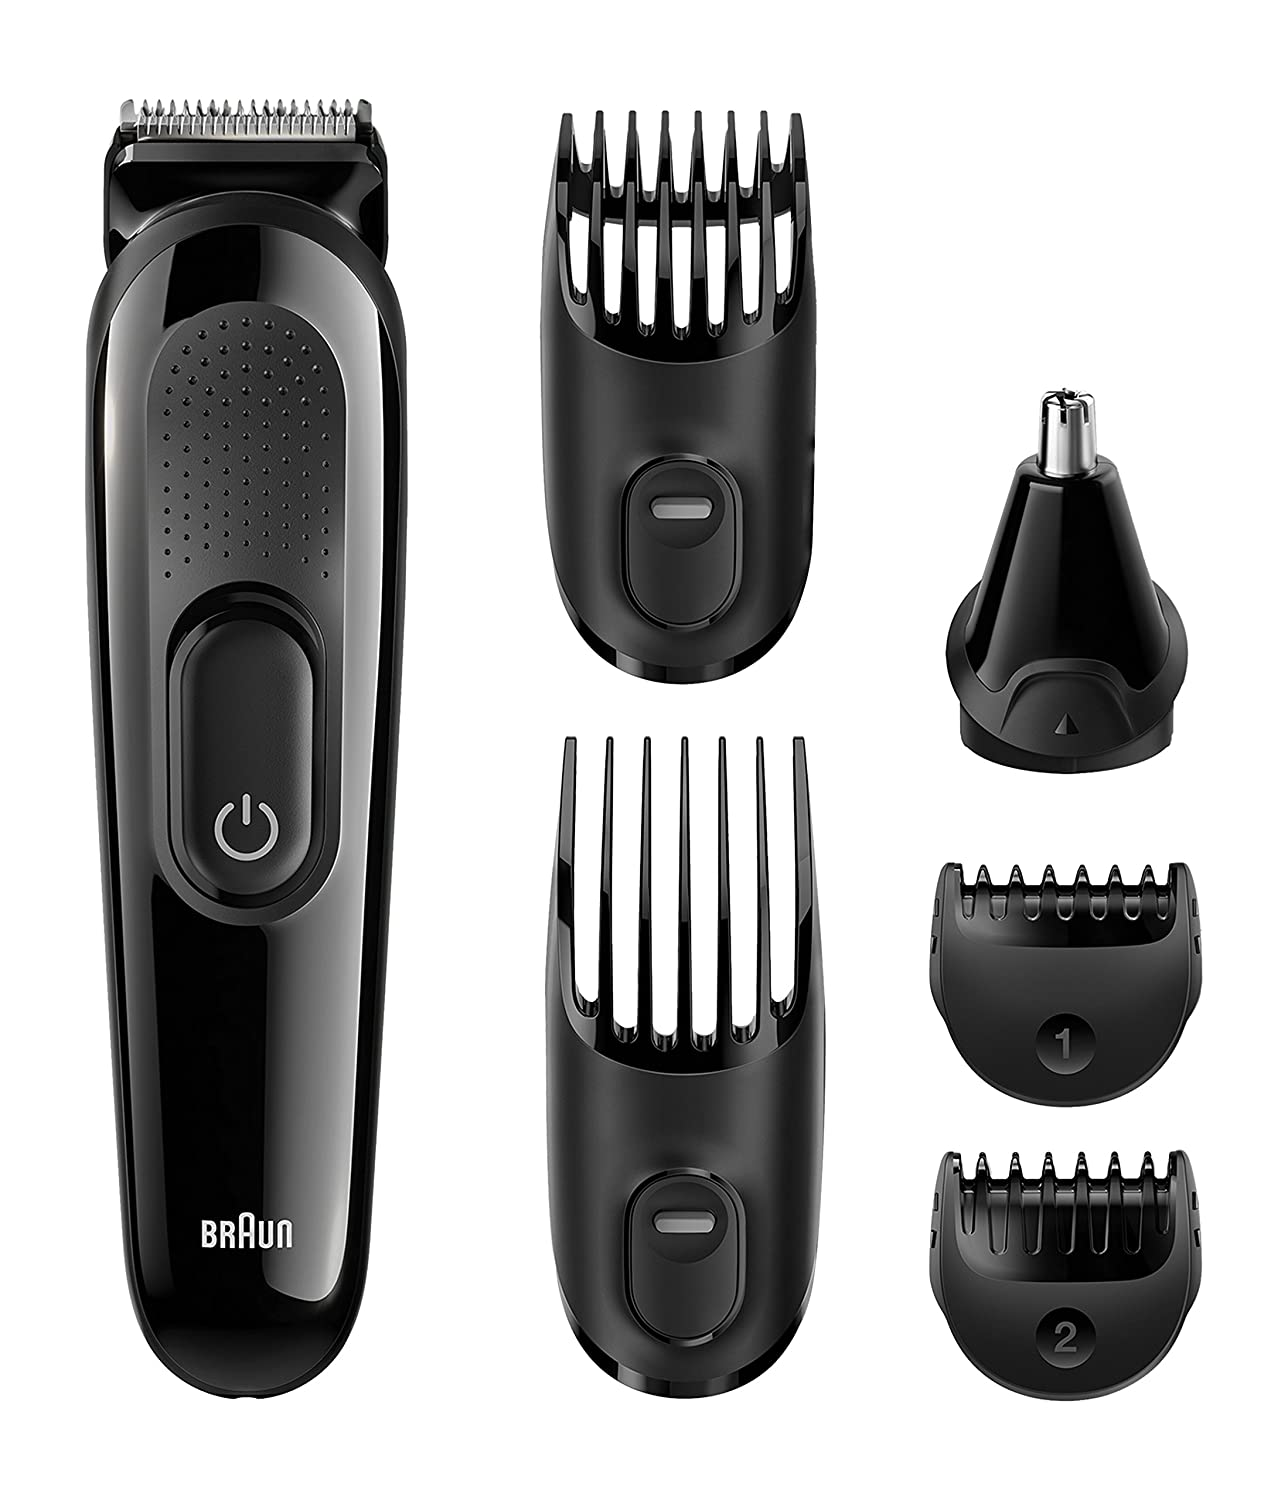 braun multi grooming kit mgk3020 6 in 1 beard hair trimmer for men face ebay. Black Bedroom Furniture Sets. Home Design Ideas